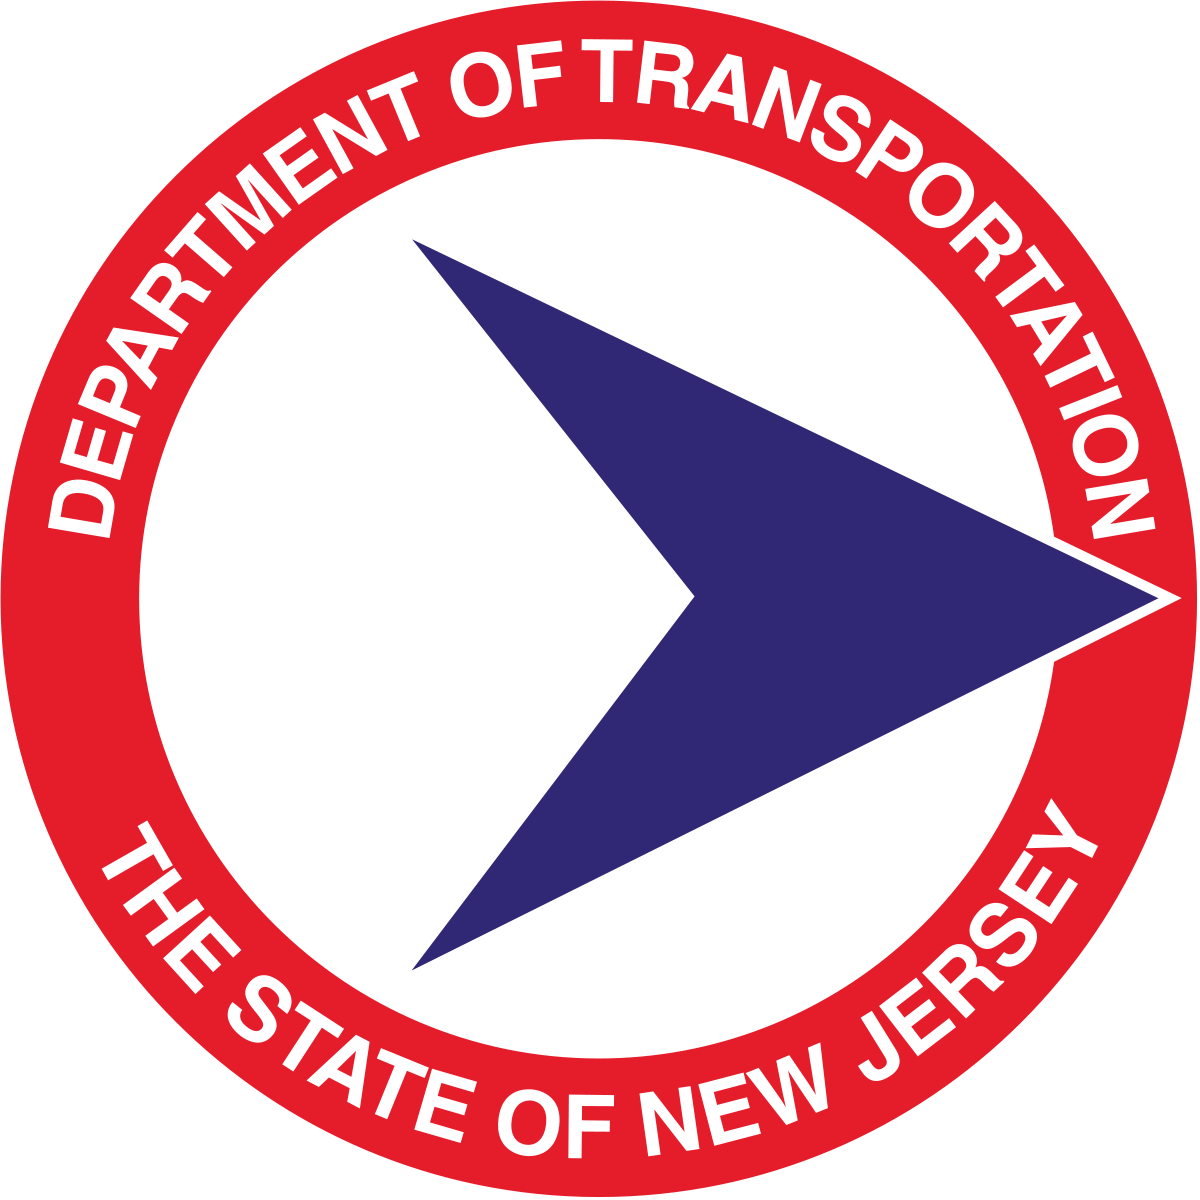 grant-66067-new-jersey-department-of-transportation